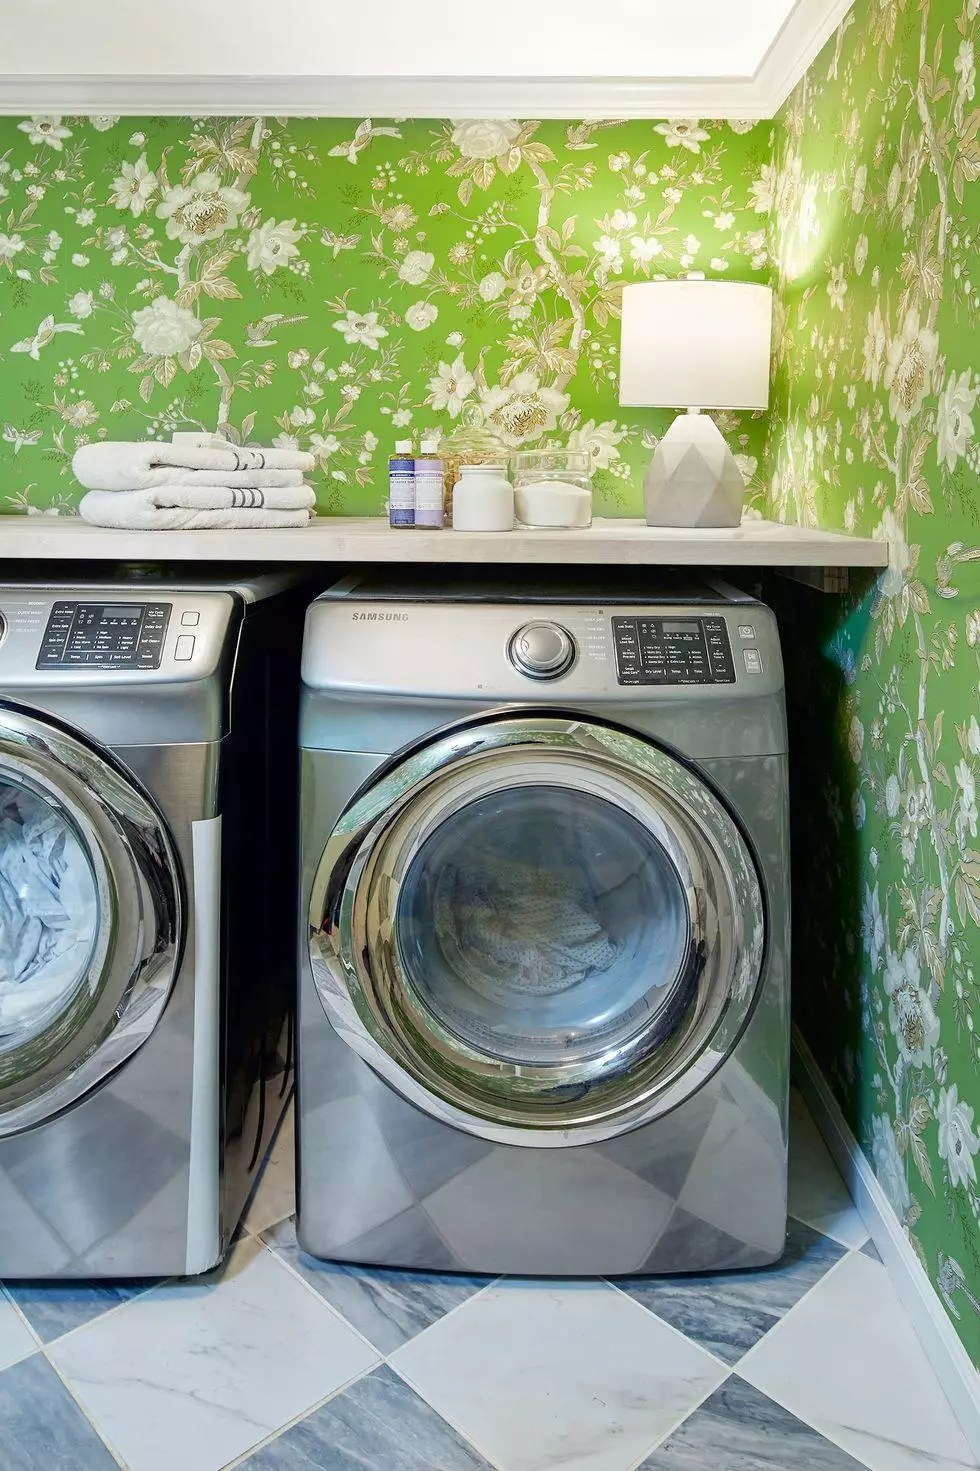 Laundry Room Decorating Ideas To Try In Your Home | World ... on Laundry Room Decor Ideas  id=95099